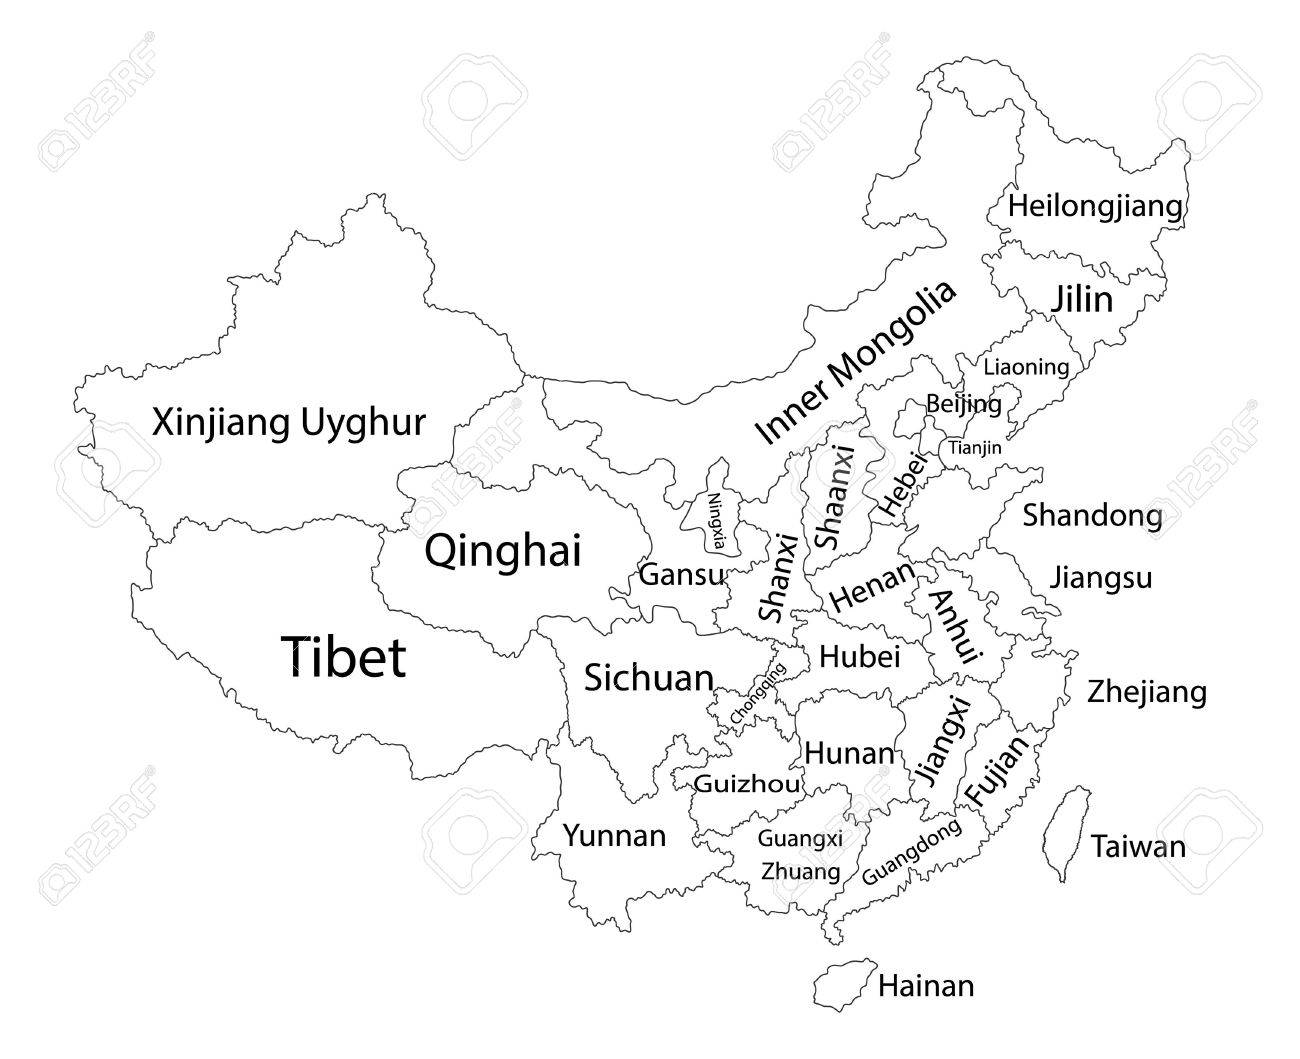 Editable blank vector map of China. Vector map of China isolated on background. High detailed. Autonomous communities of China. Administrative divisions of China counties, separated provinces. - 62185721